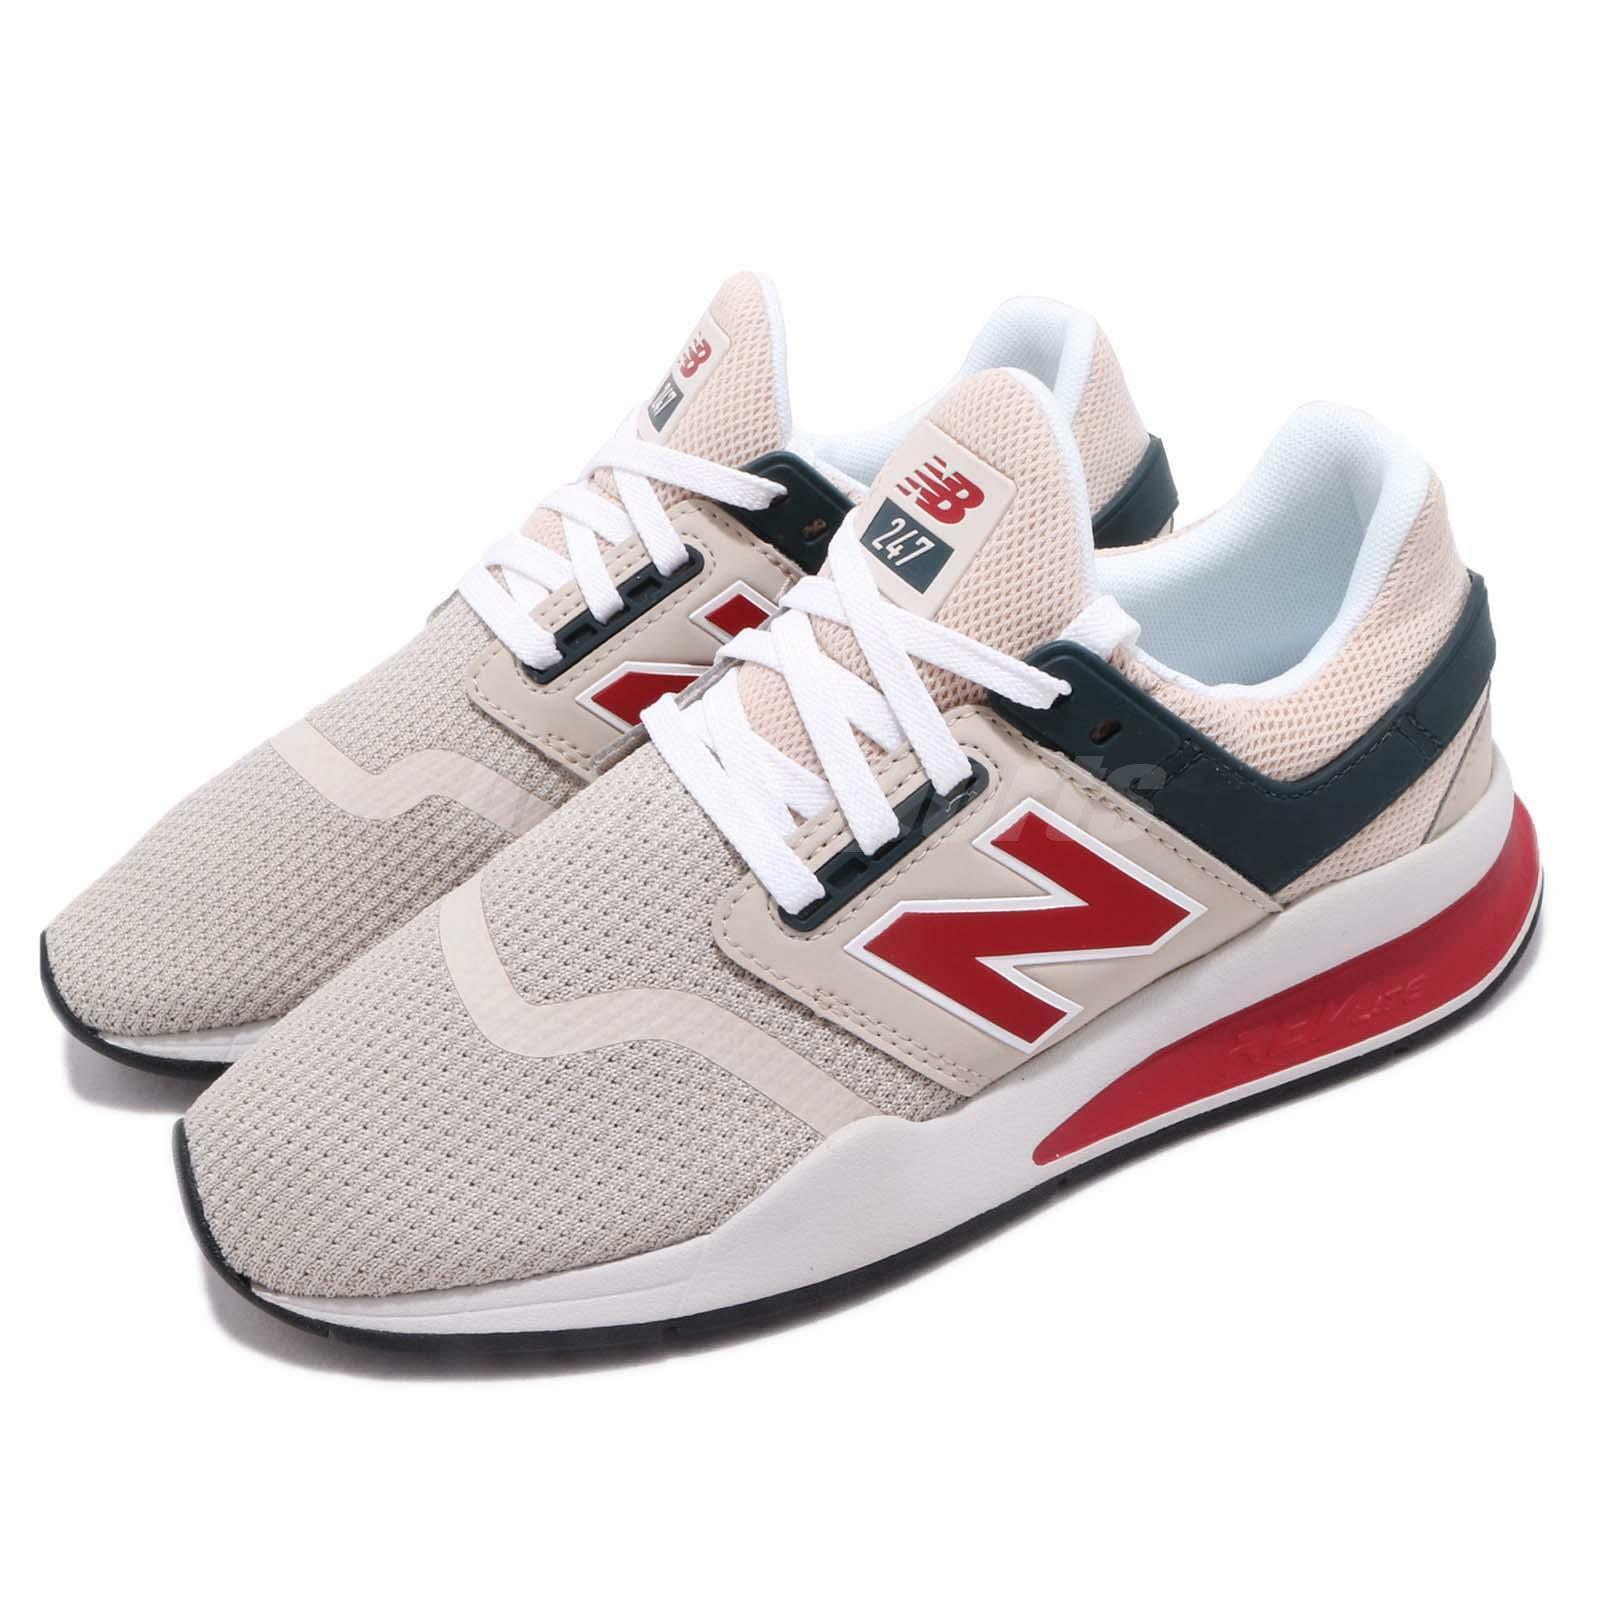 New Balance MS247NMN D Beige Red White Men Running shoes Sneakers MS247NMND